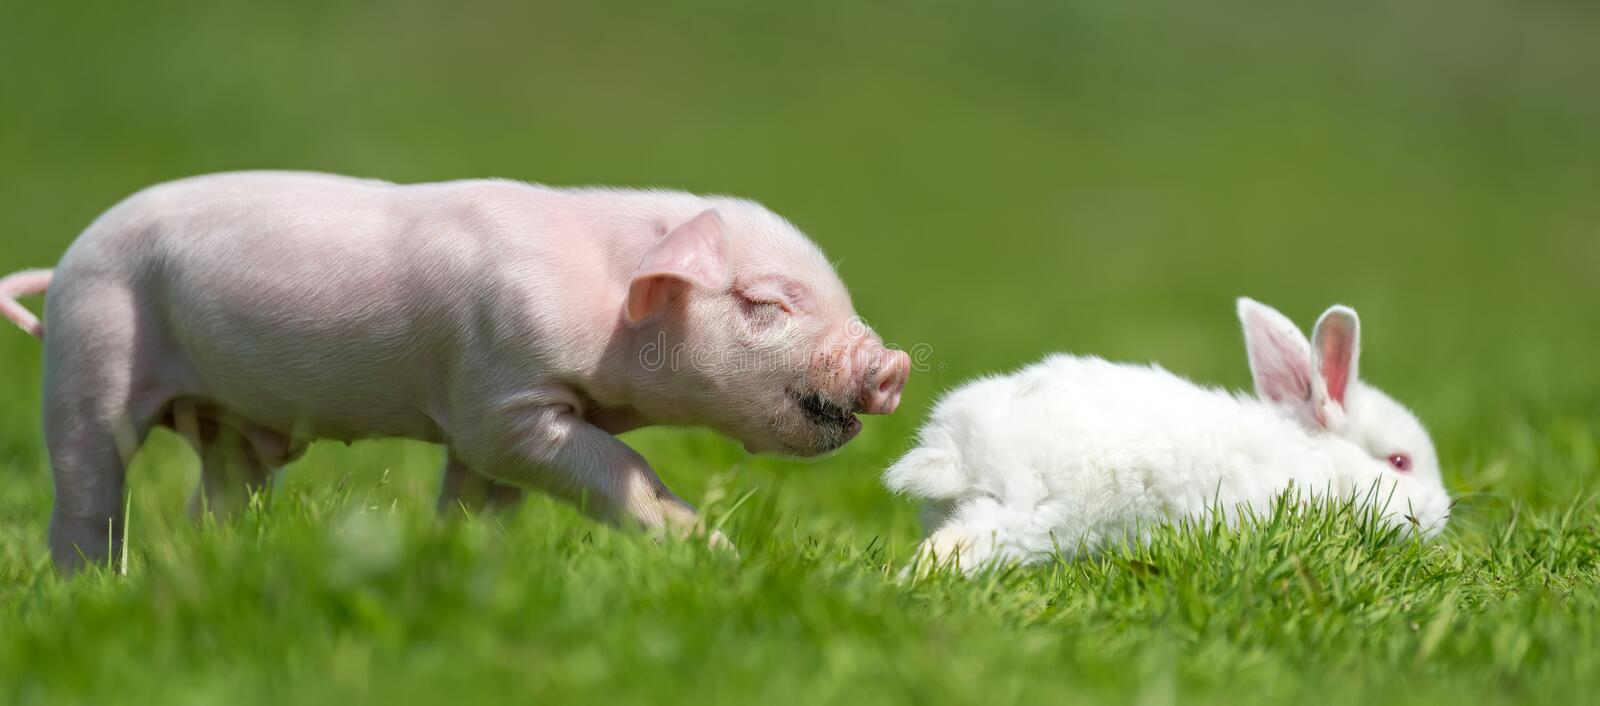 Piglet and white rabbit on spring green grass on a farm. Newborn piglet and white rabbit on spring green grass on a farm stock image